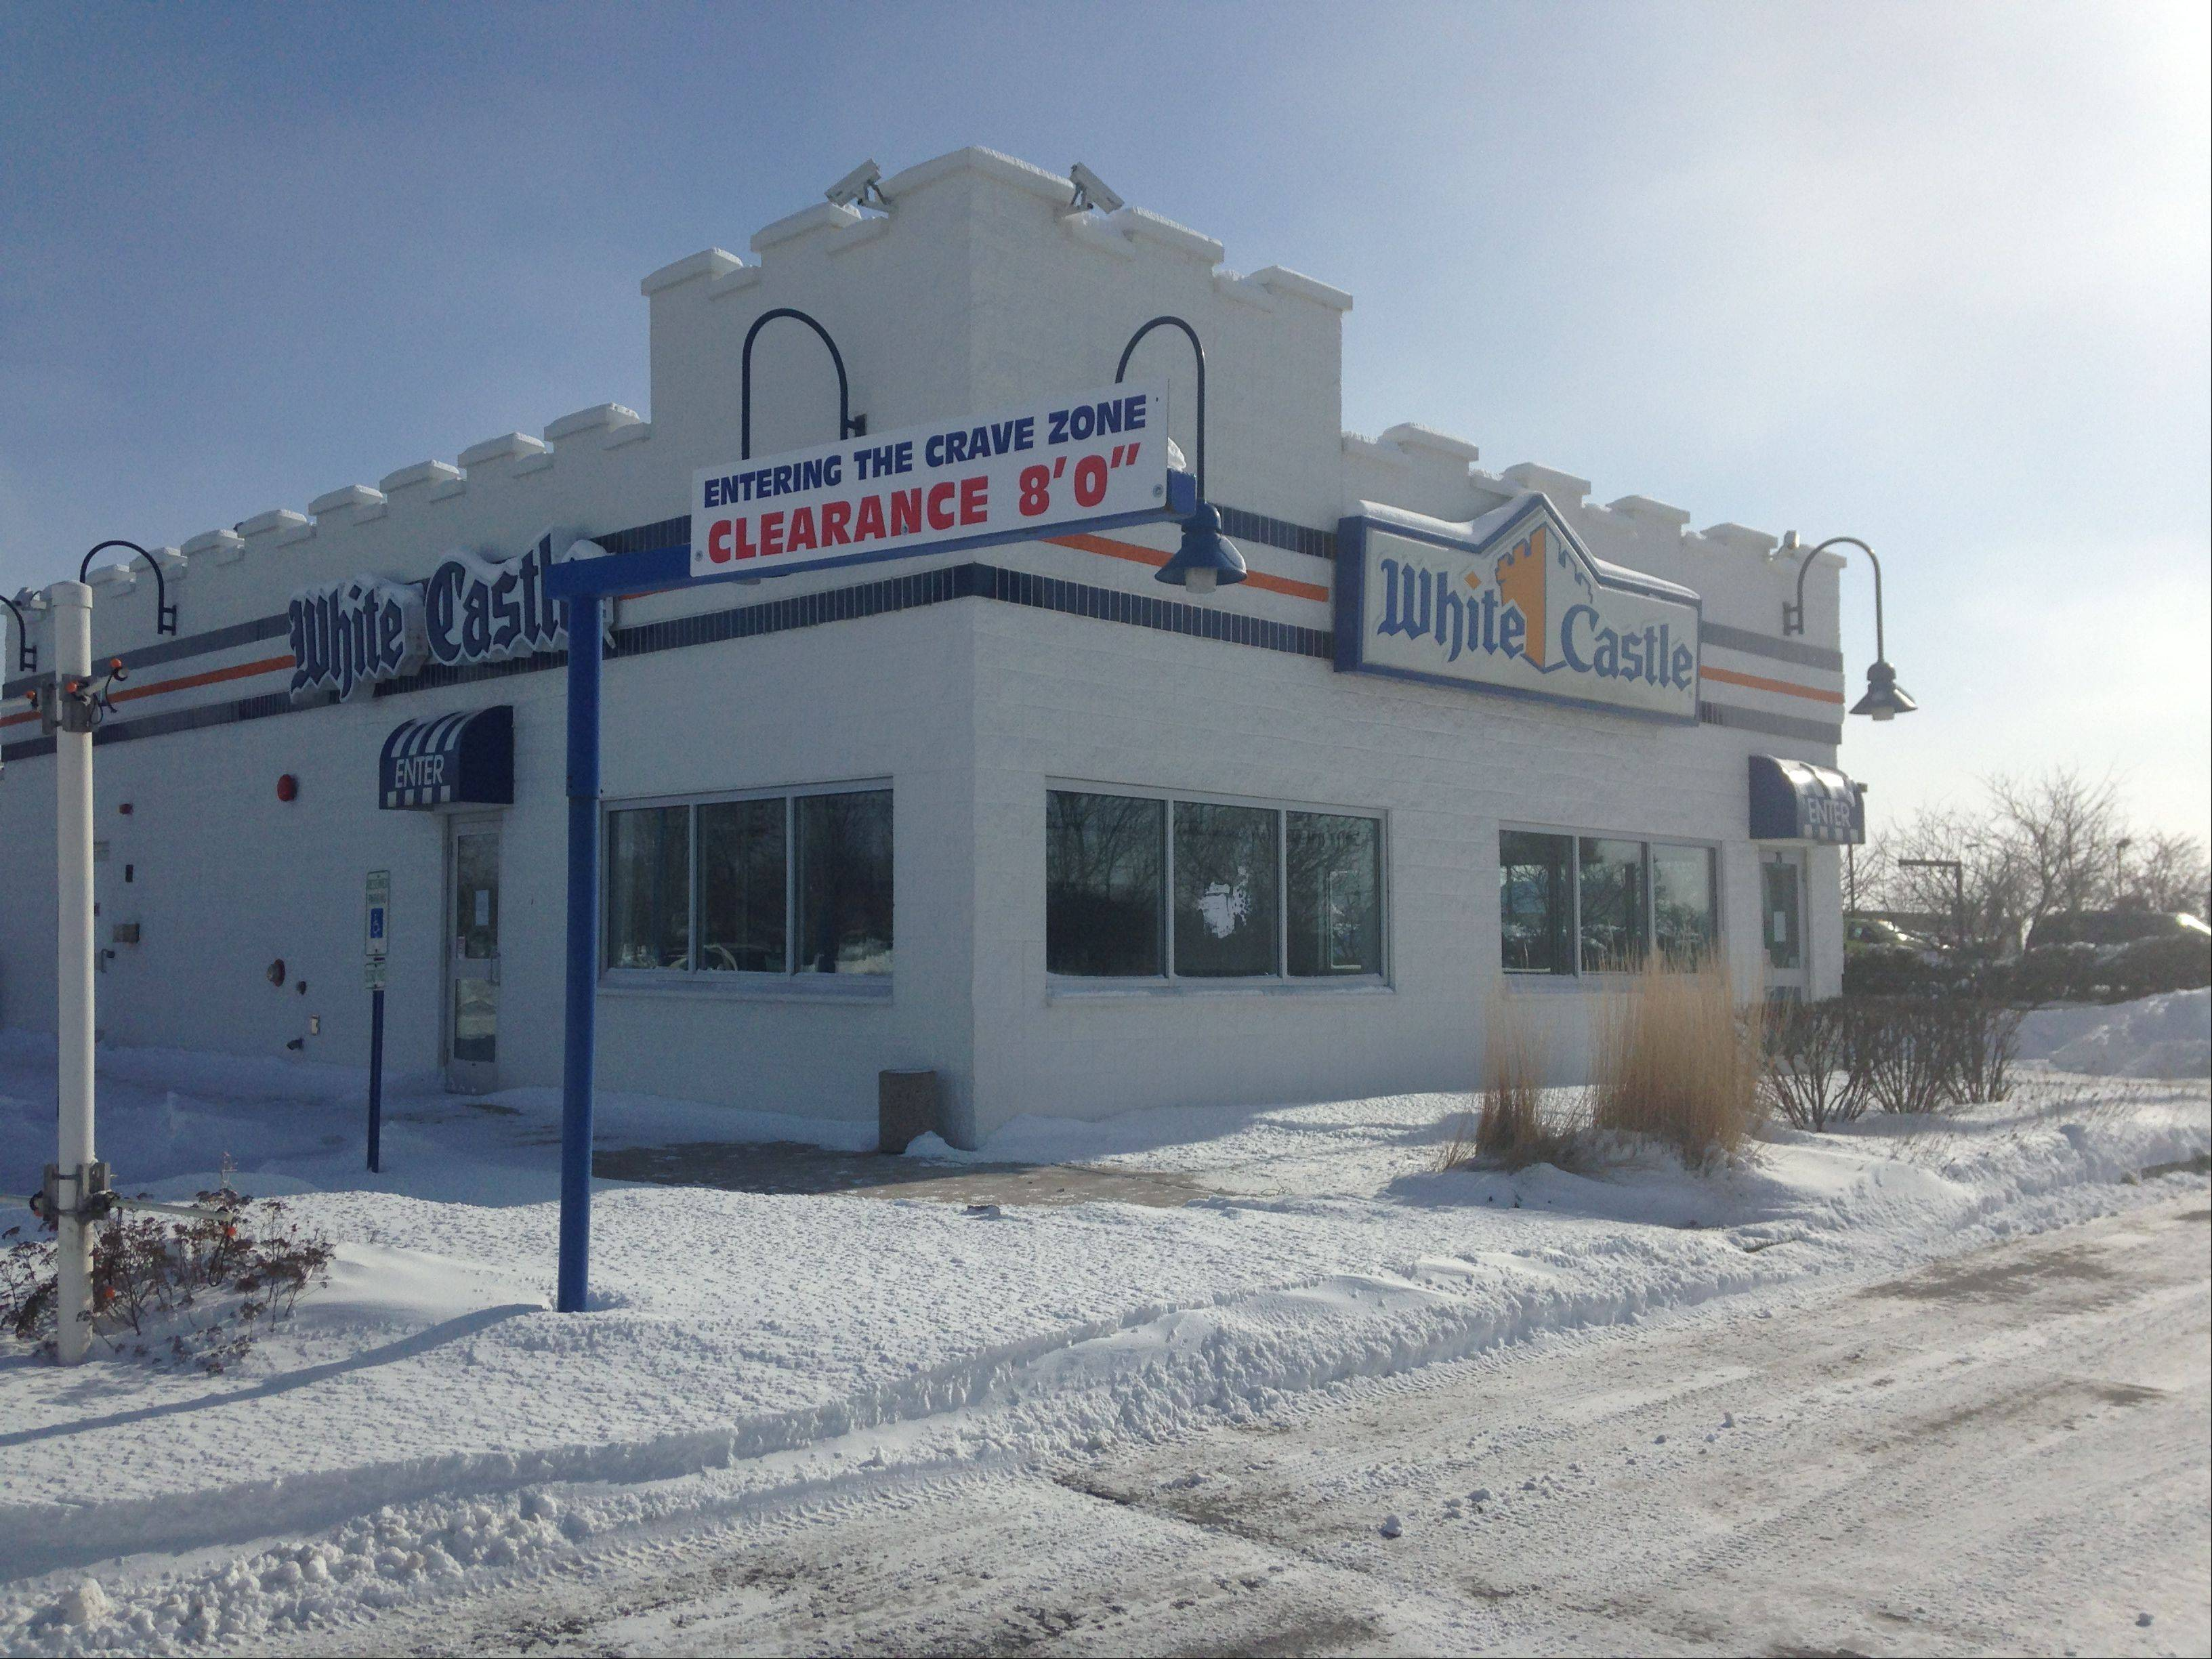 The White Castle on Randall Road in Batavia has closed after 12 years in business.